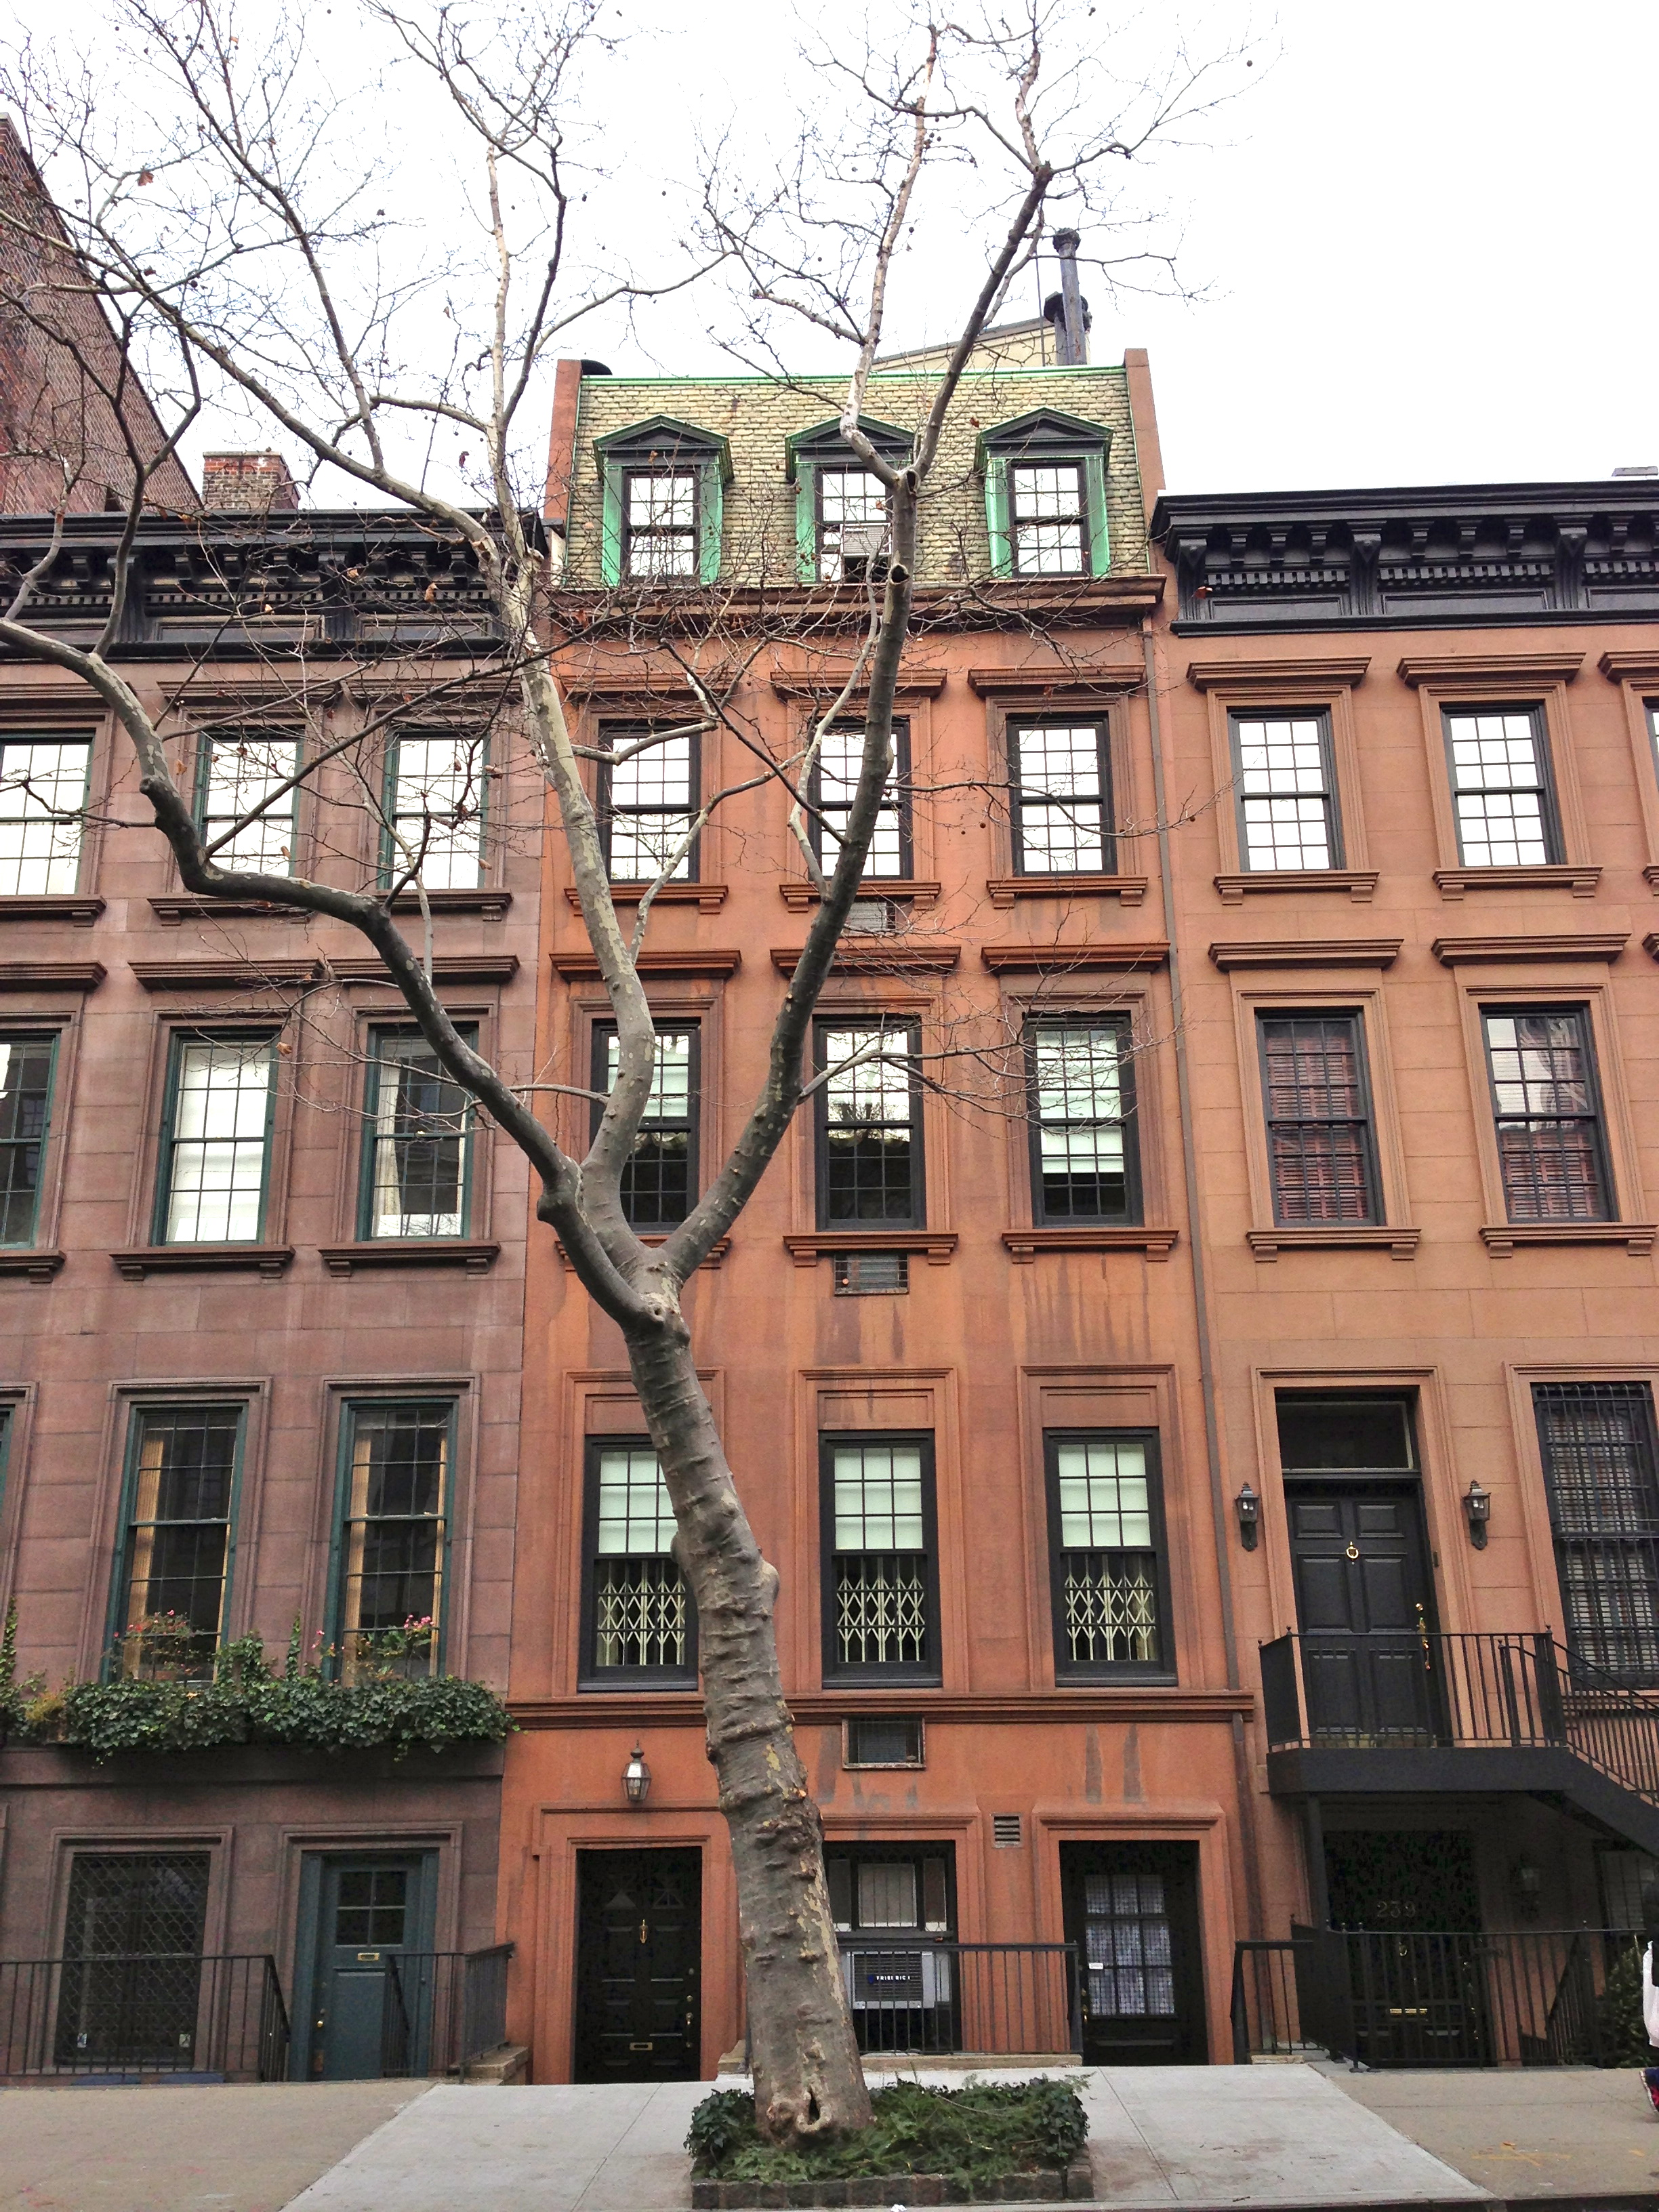 brownstones on Upper East Side | Ephemeral New York